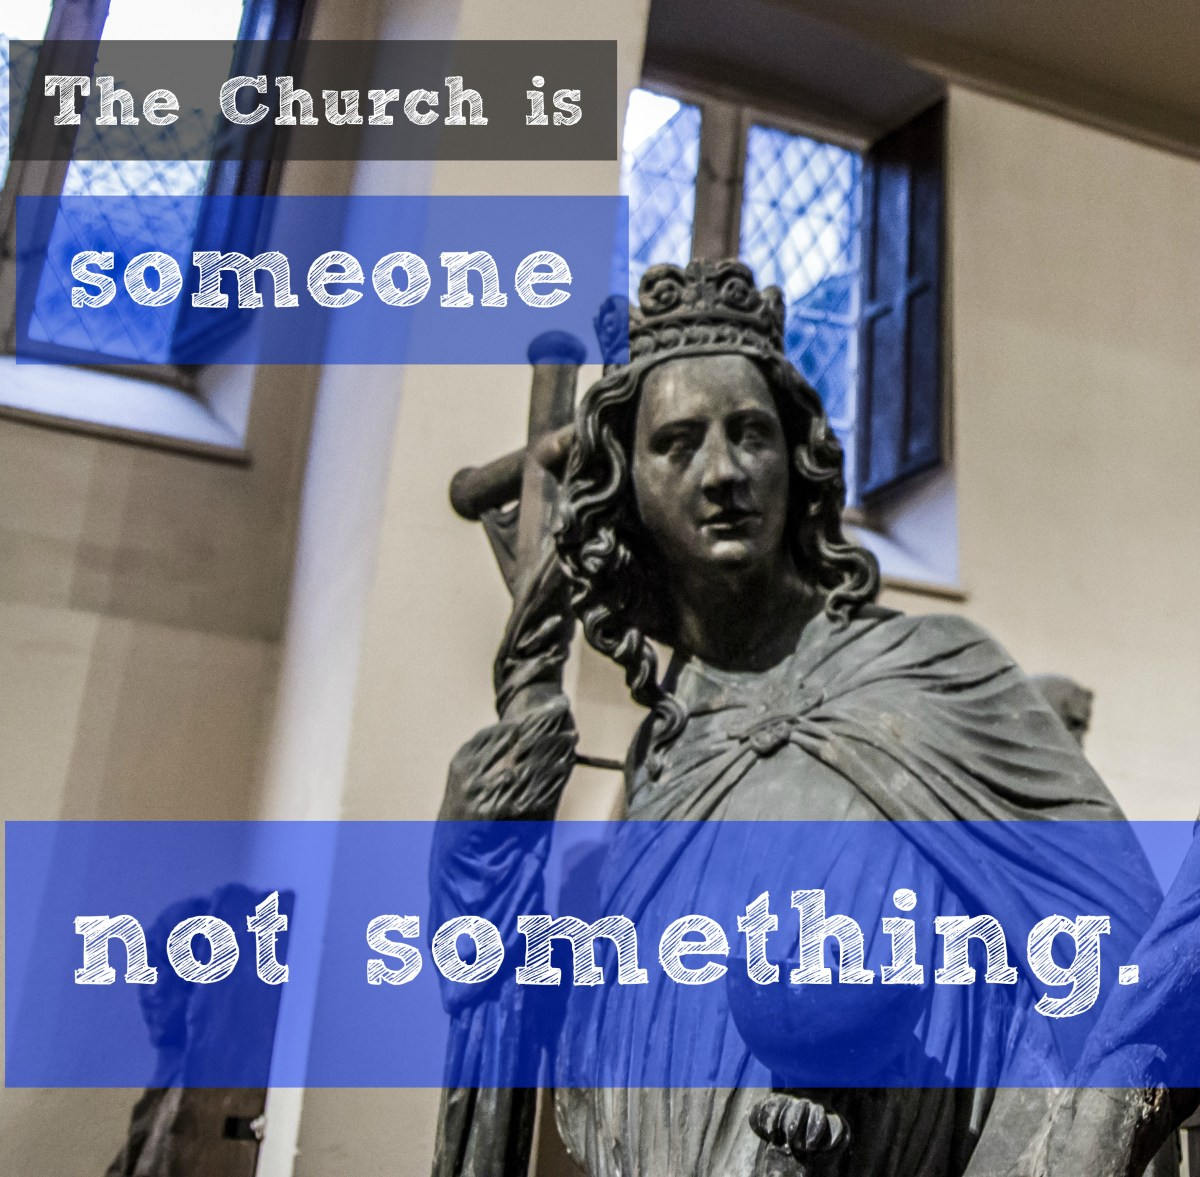 The Church is someone, not something